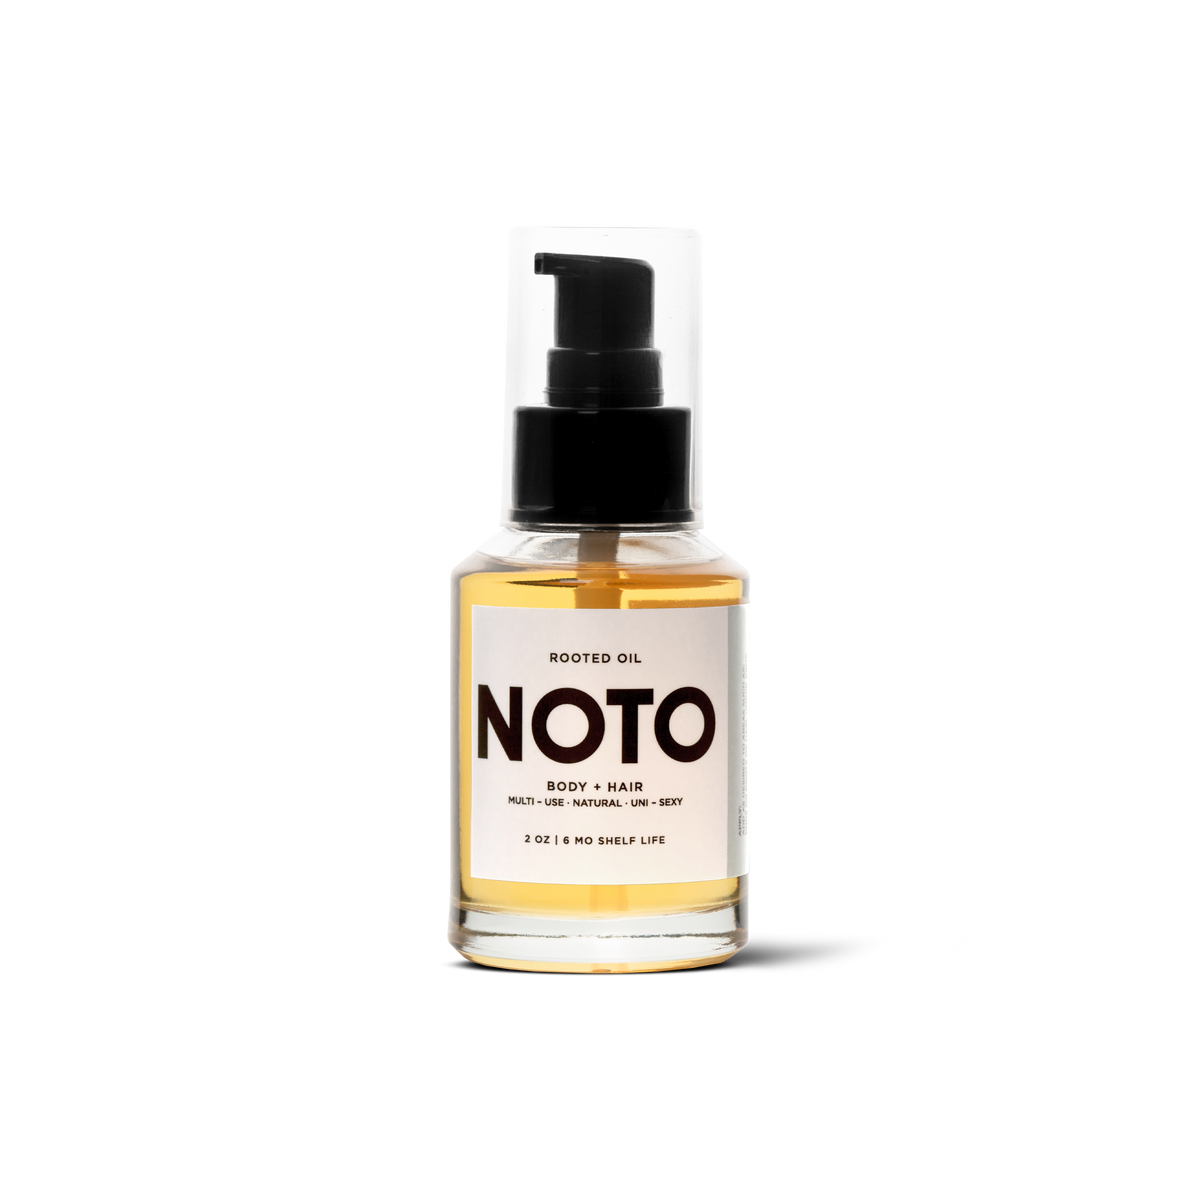 Rooted Oil (2 oz / 60 ml)